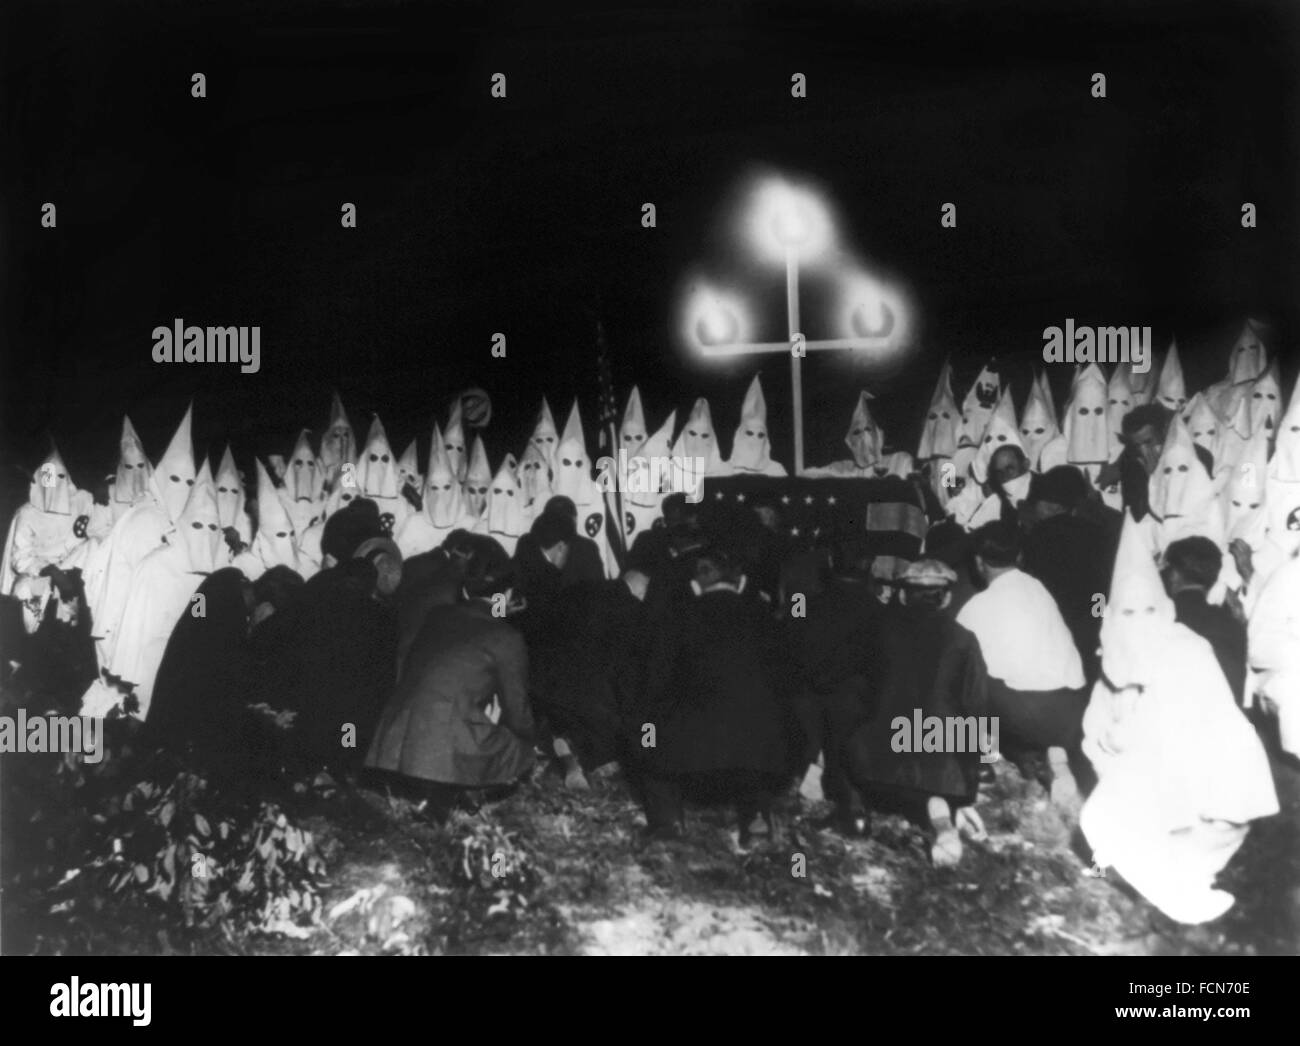 Ku Klux Klan assembled to receive candidates for membership, Washington DC, c.1920-1930 - Stock Image